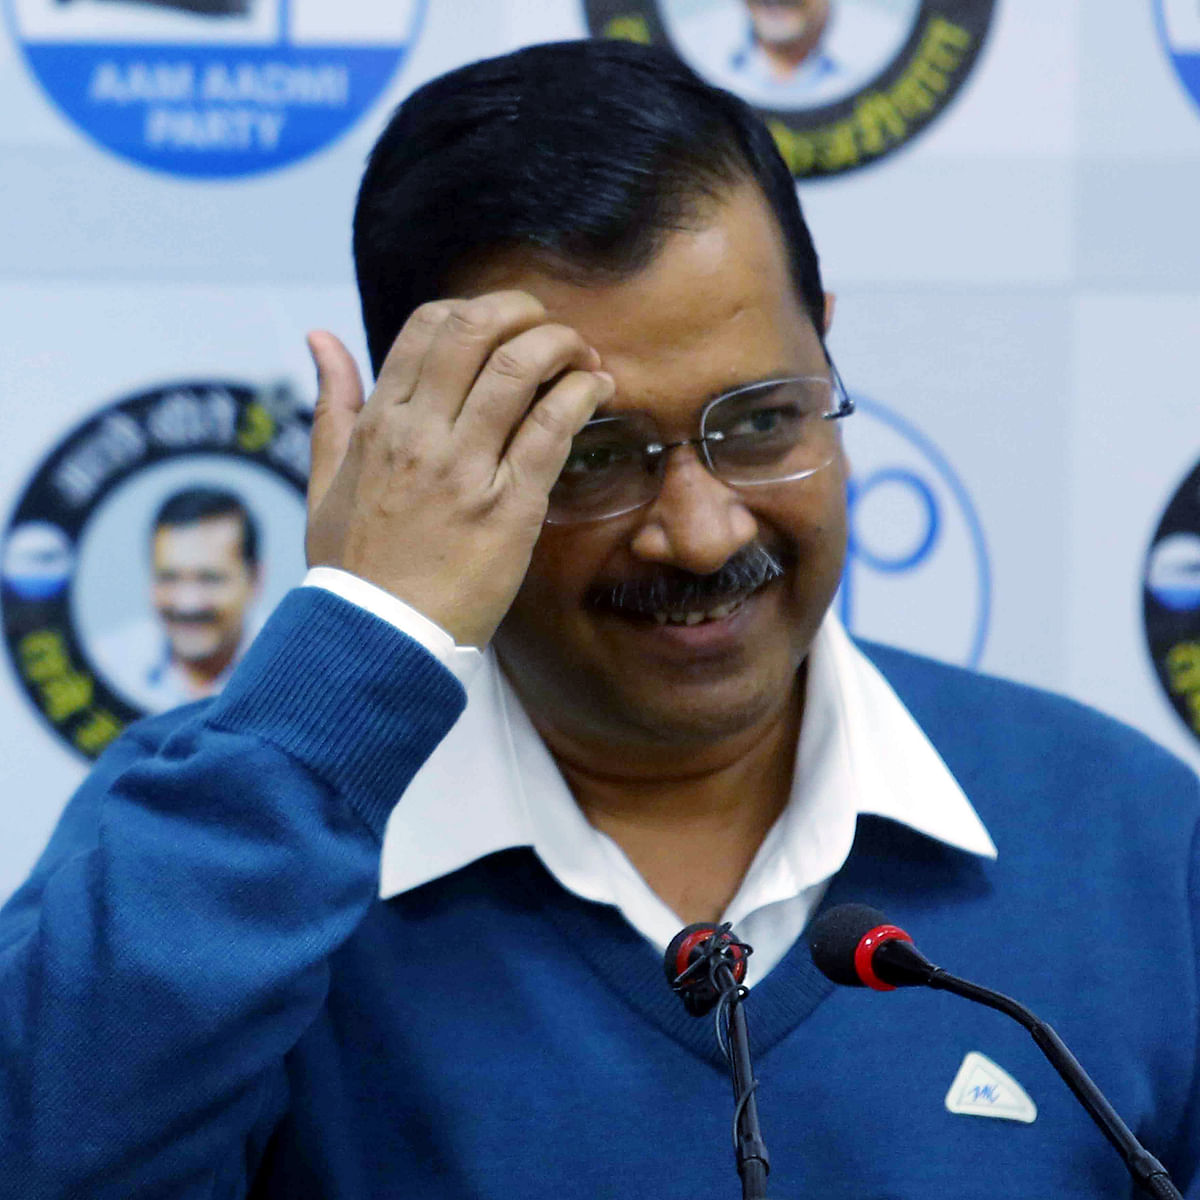 Delhi elections 2020: AAP uses Spider-Man to take a dig at BJP over lack of CM candidate